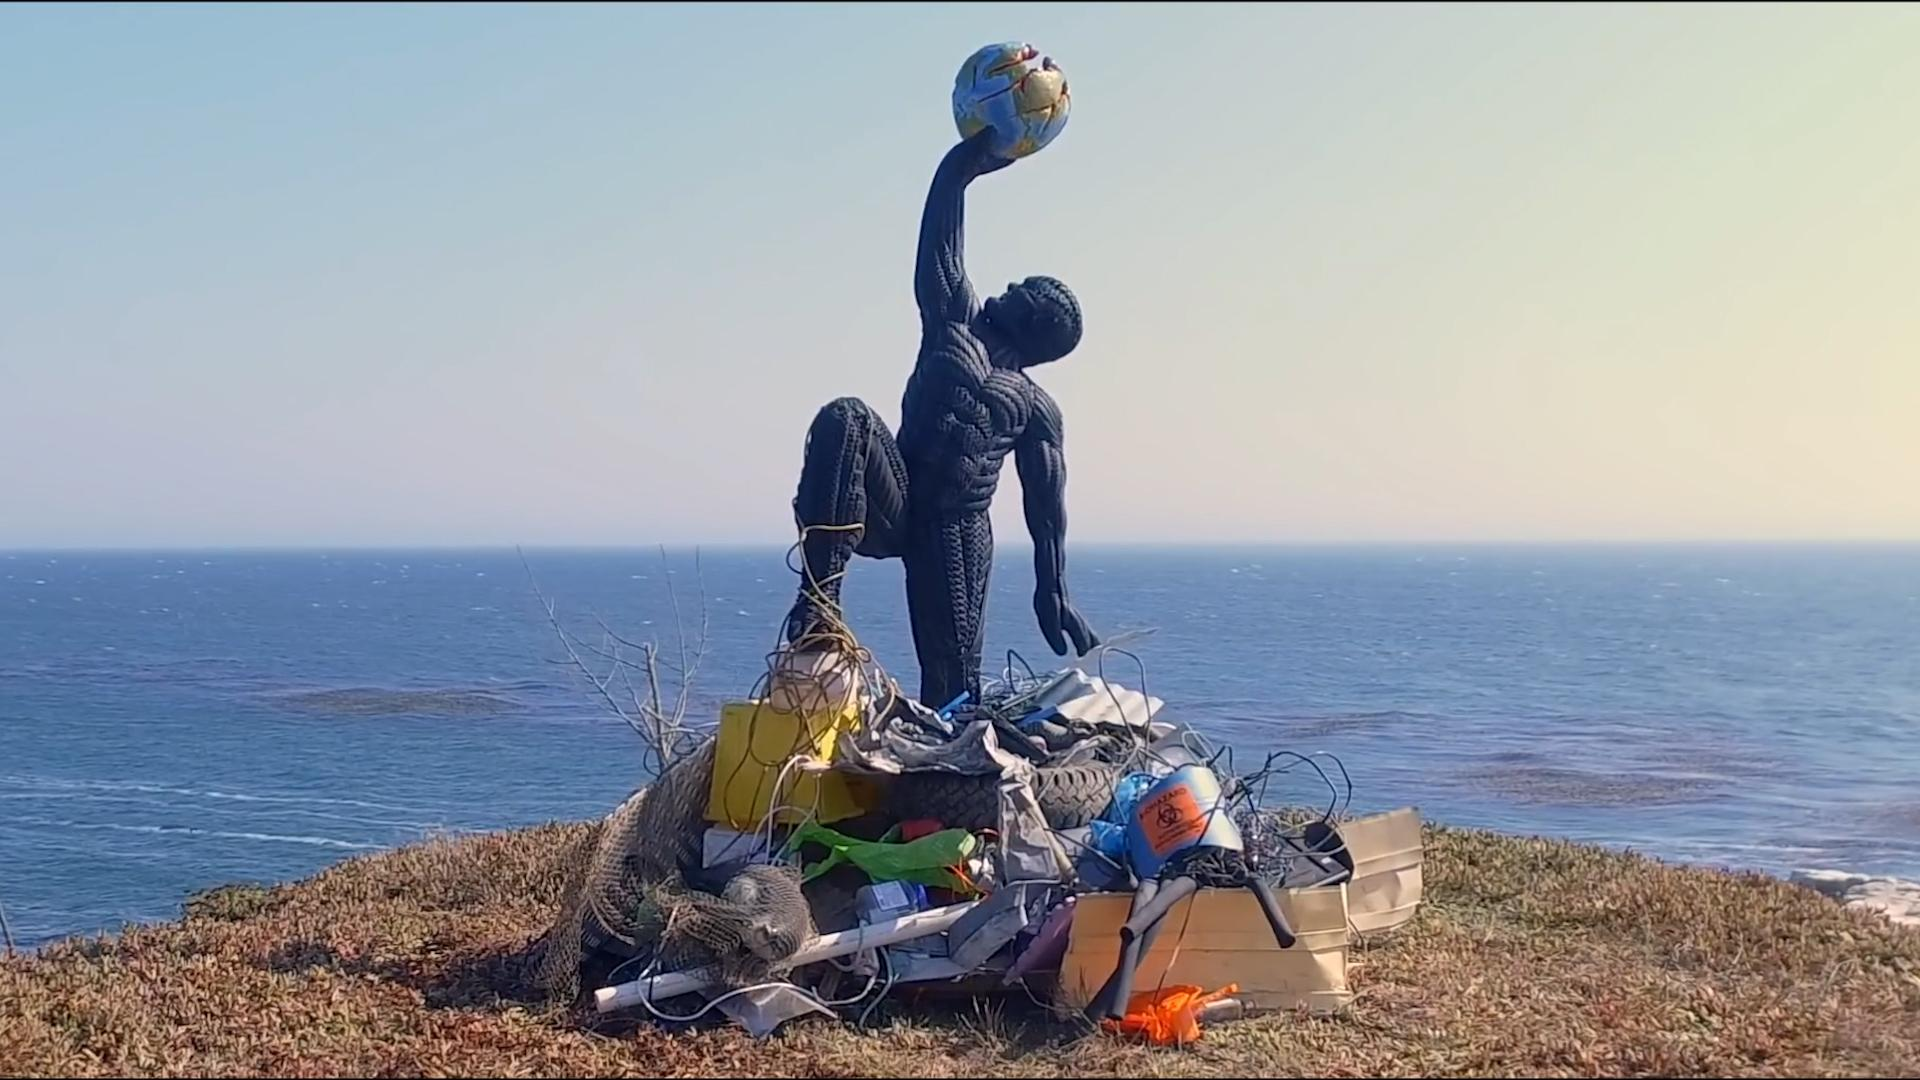 This pro baseball player makes sculptures out of recycled tires